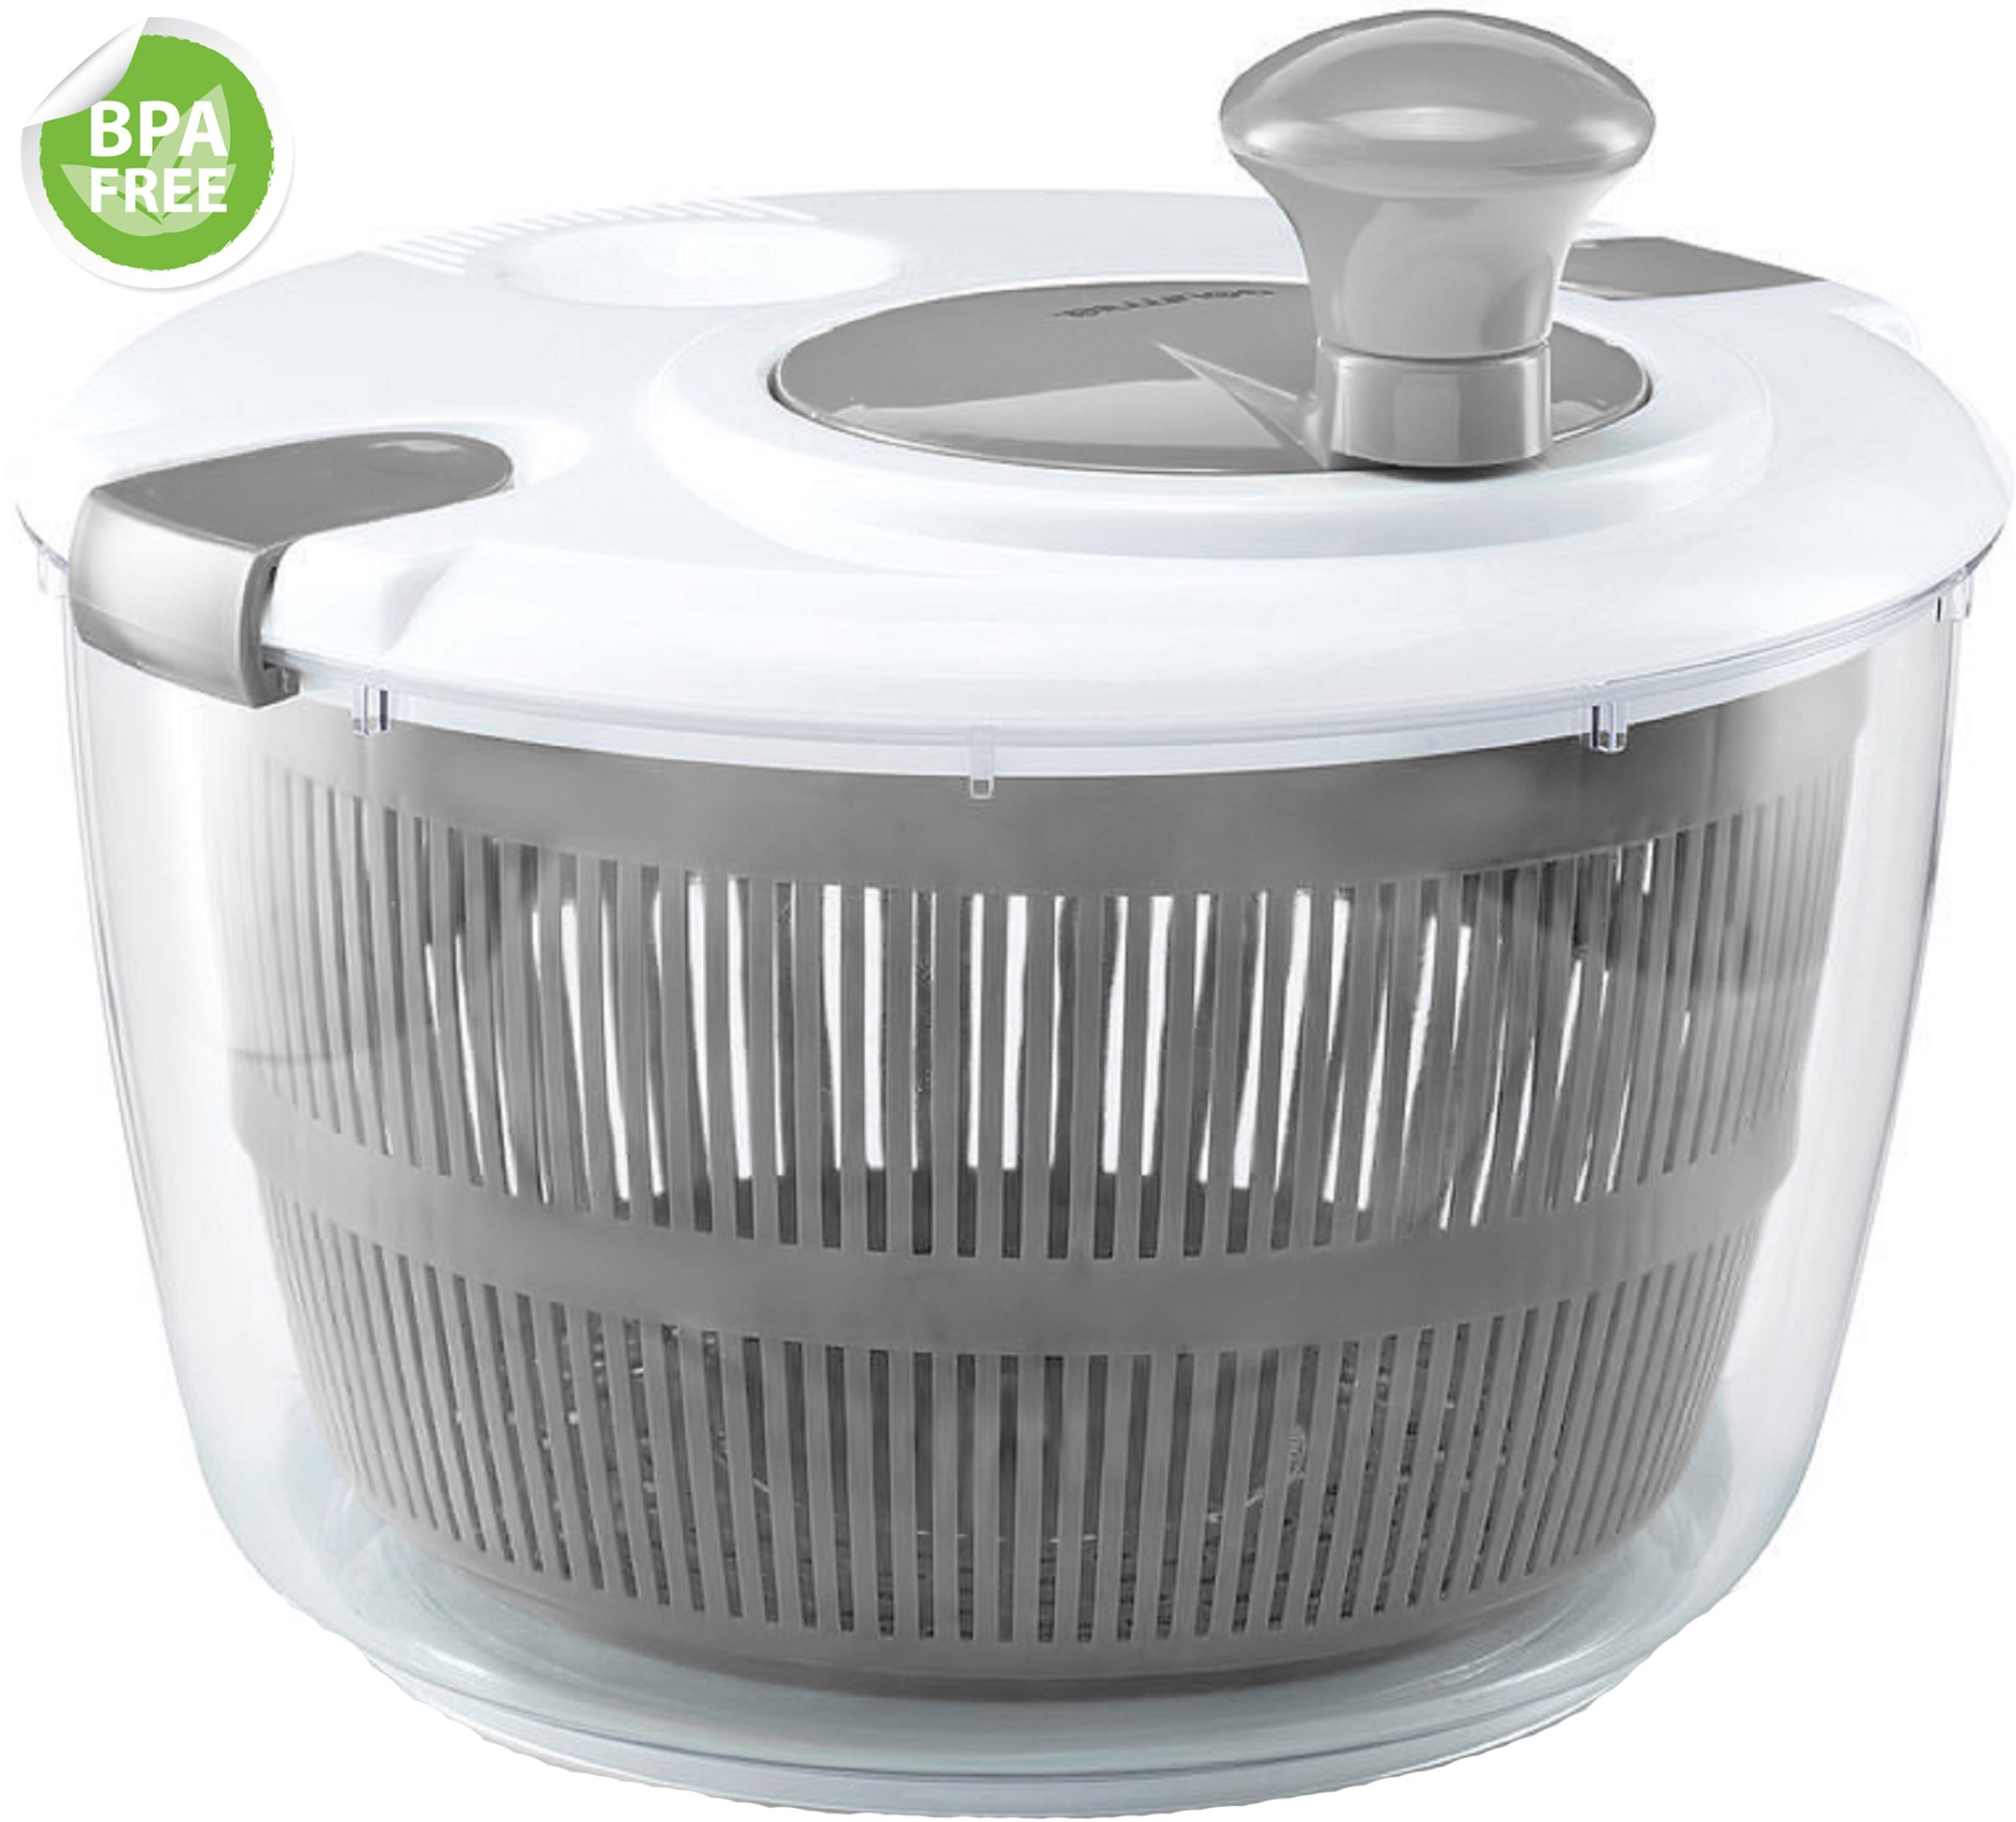 Gourmia GSA9240 Jumbo Salad Spinner - Manual Lettuce Dryer With Crank Handle & Locking Lid, BPA Free and Top Rack Dishwasher Safe,(5L) by Gourmia